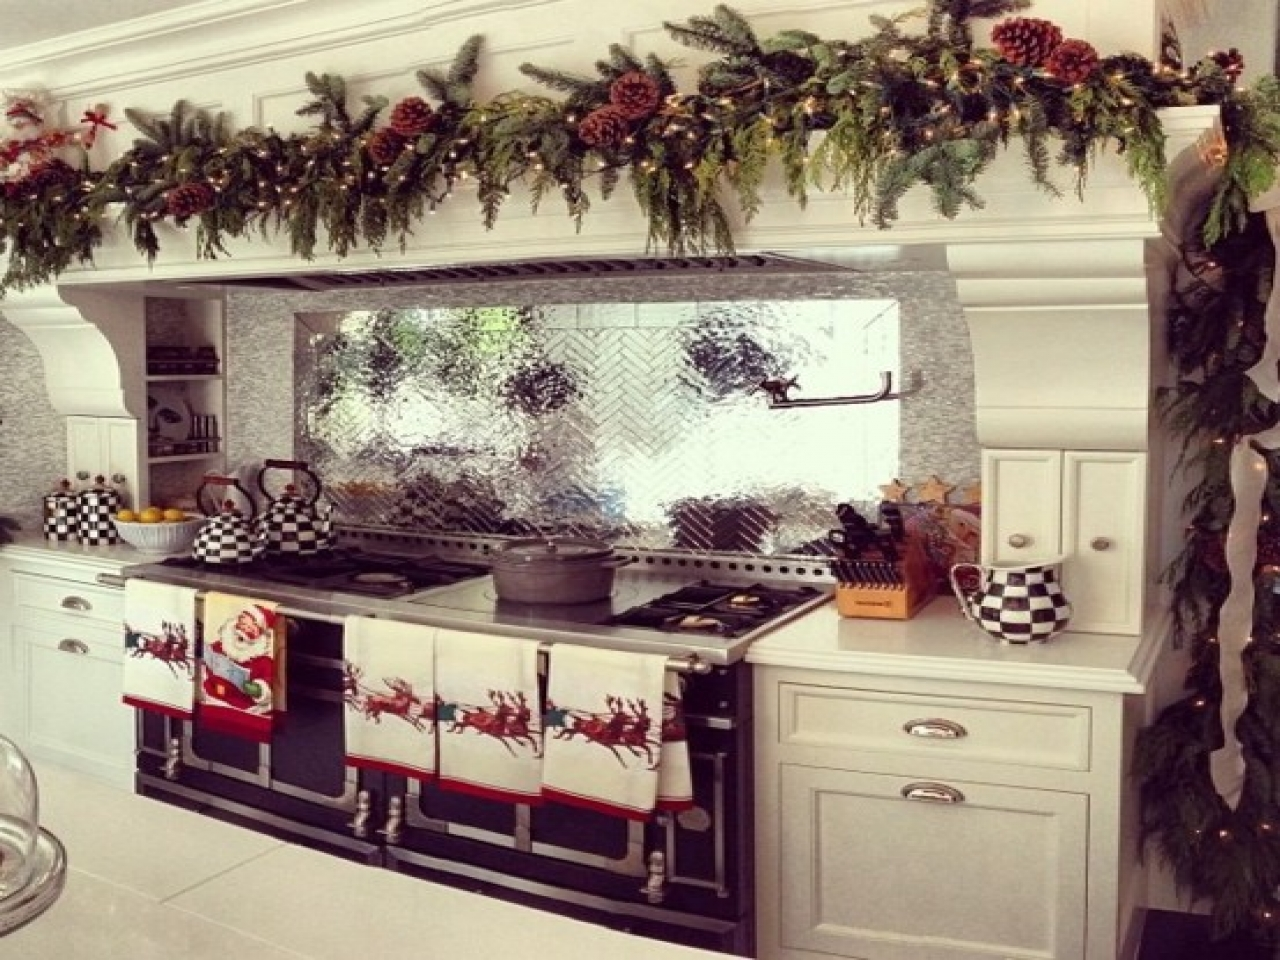 garlands over oven in Kitchen Christmas Decoration Ideas | LovelySpaces.com